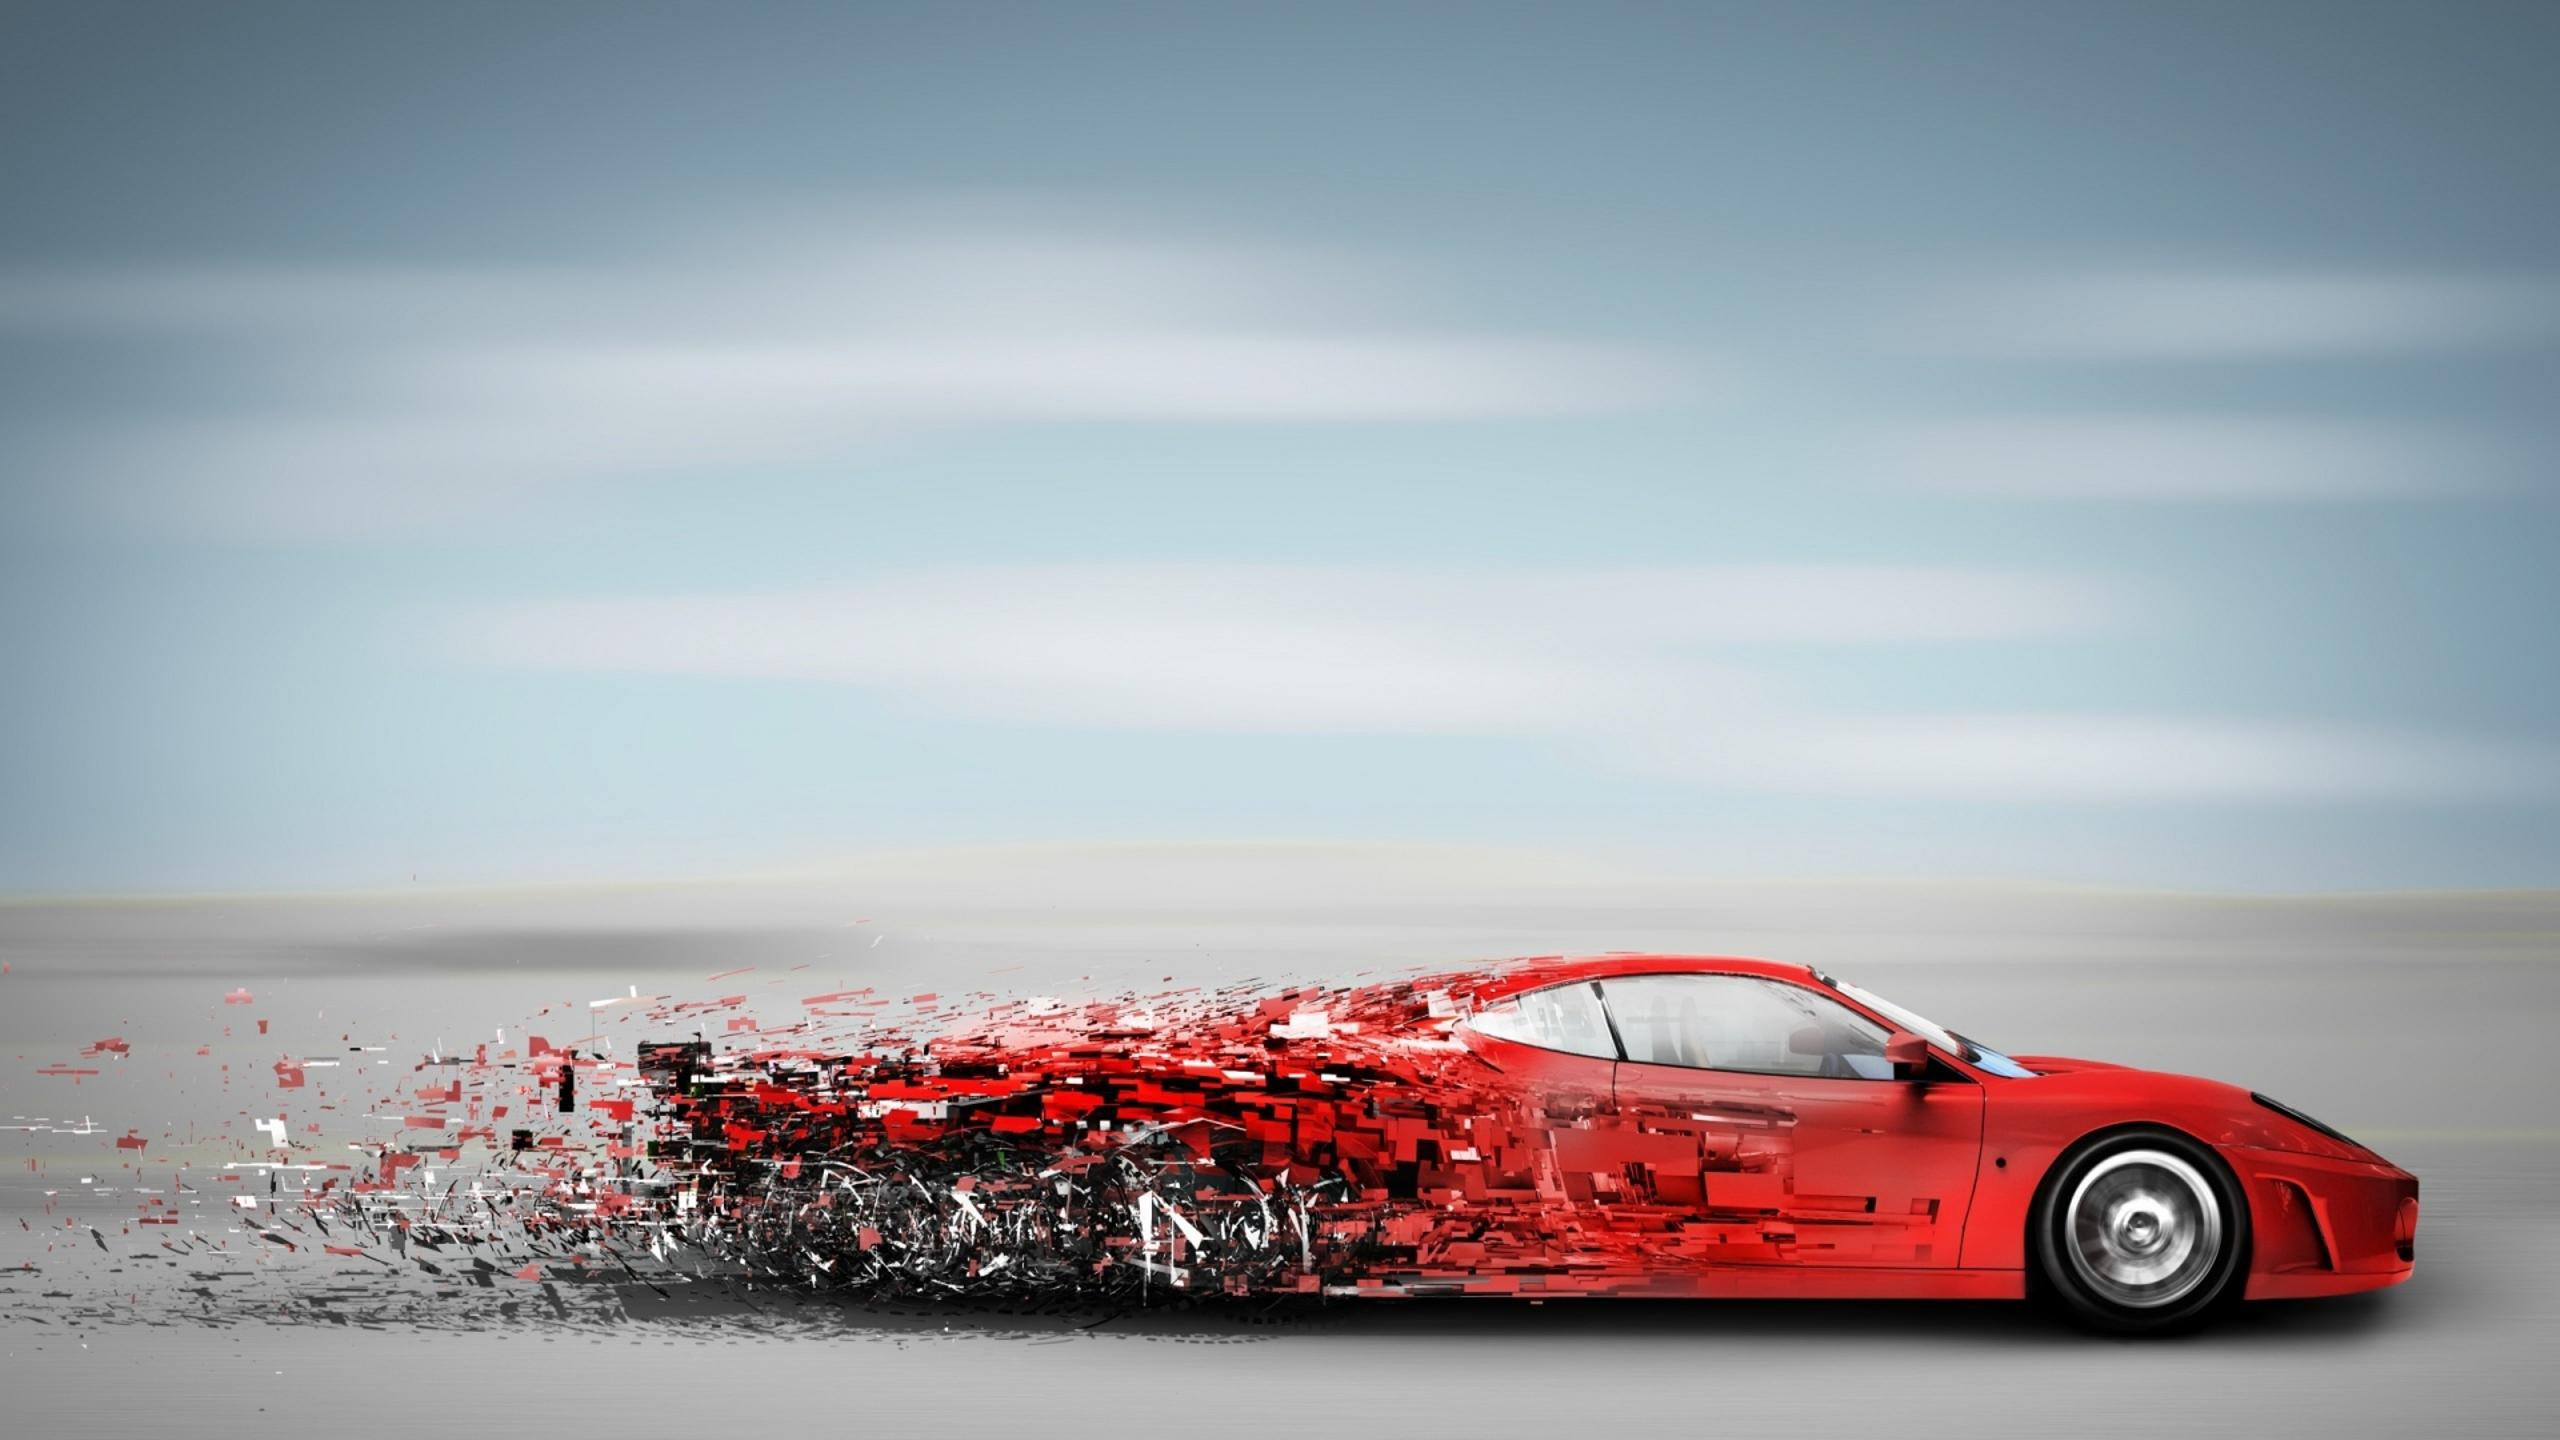 Spring Anime Wallpaper Abstract Red Speedy Car Sport Car Wallpaper Wallpaper